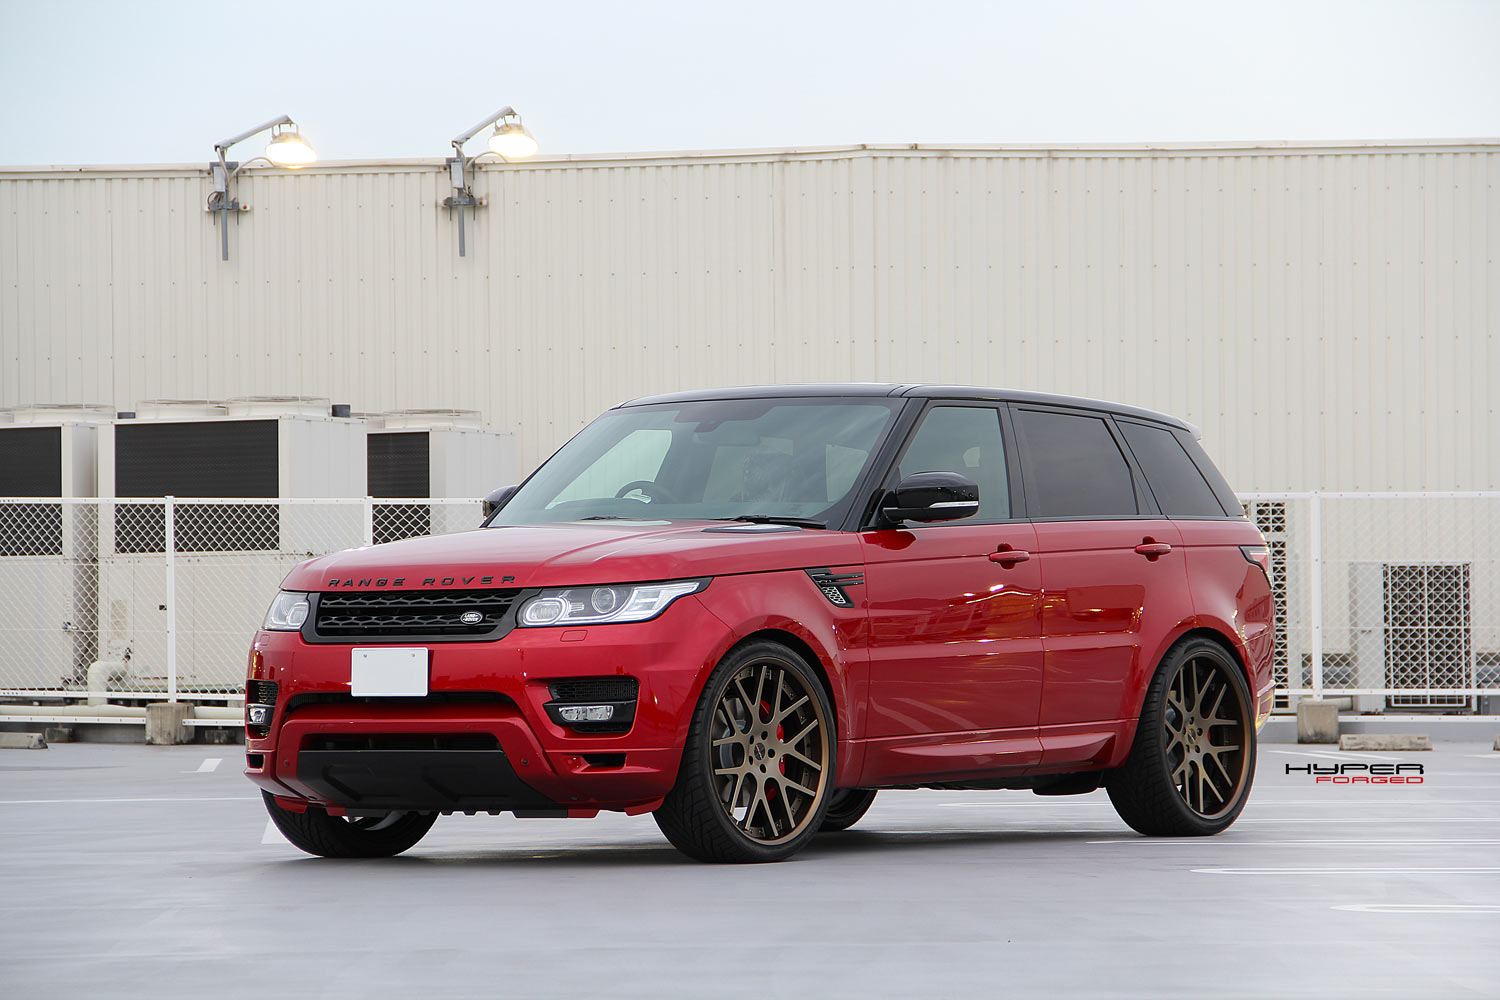 Range Rover Sport Fitted With 24'' HFC7